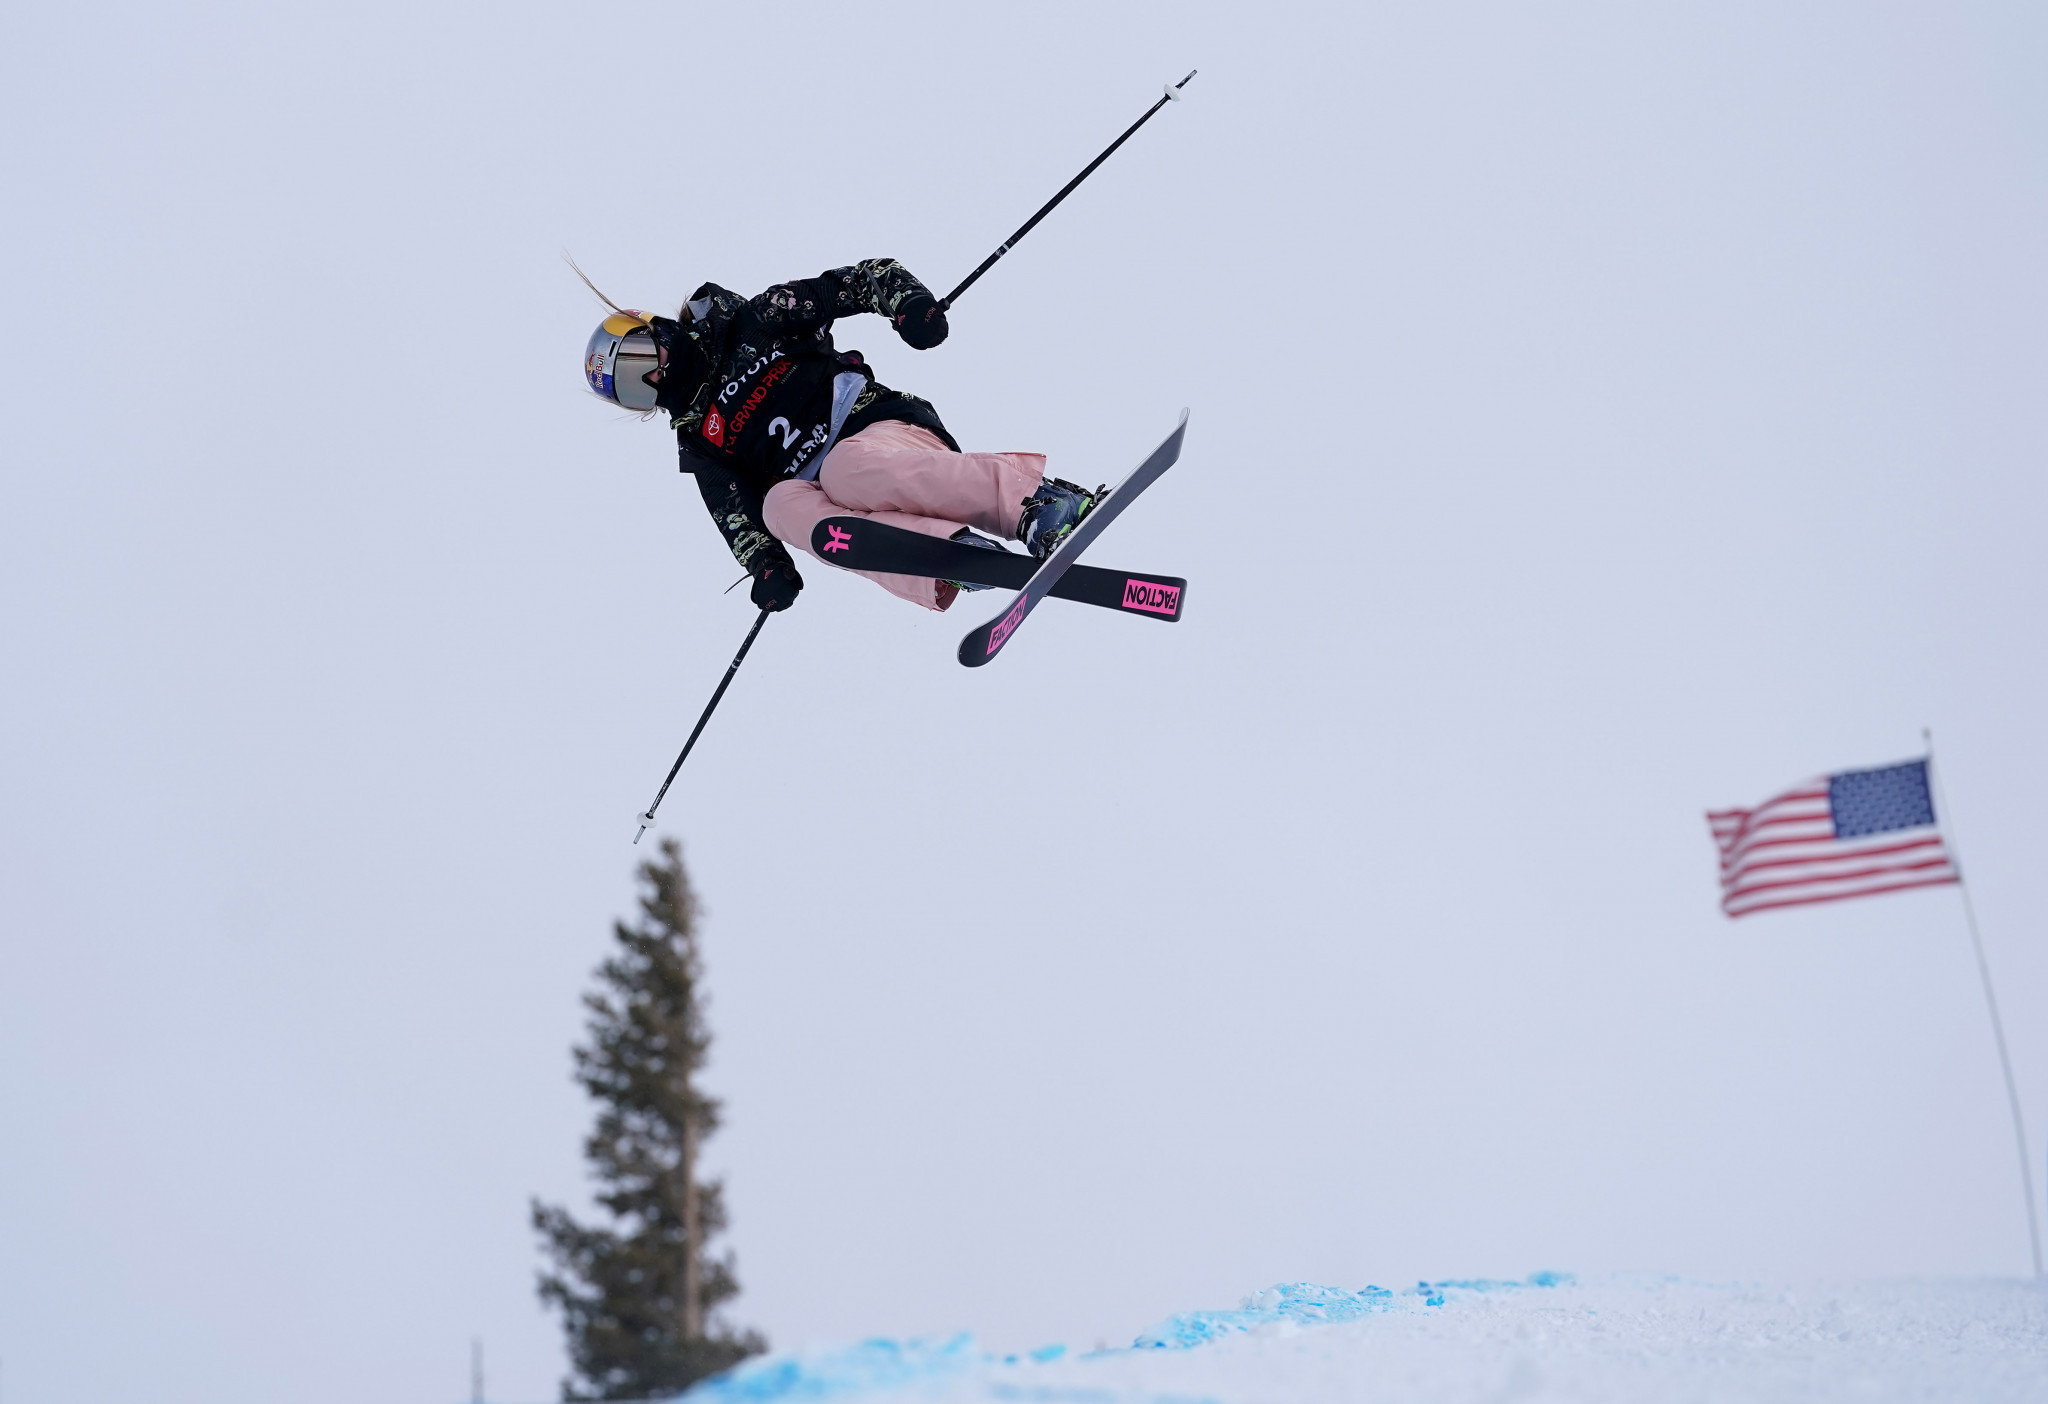 Sildaru and Sharpe lead strong field for FIS Halfpipe World Cup in Cardrona